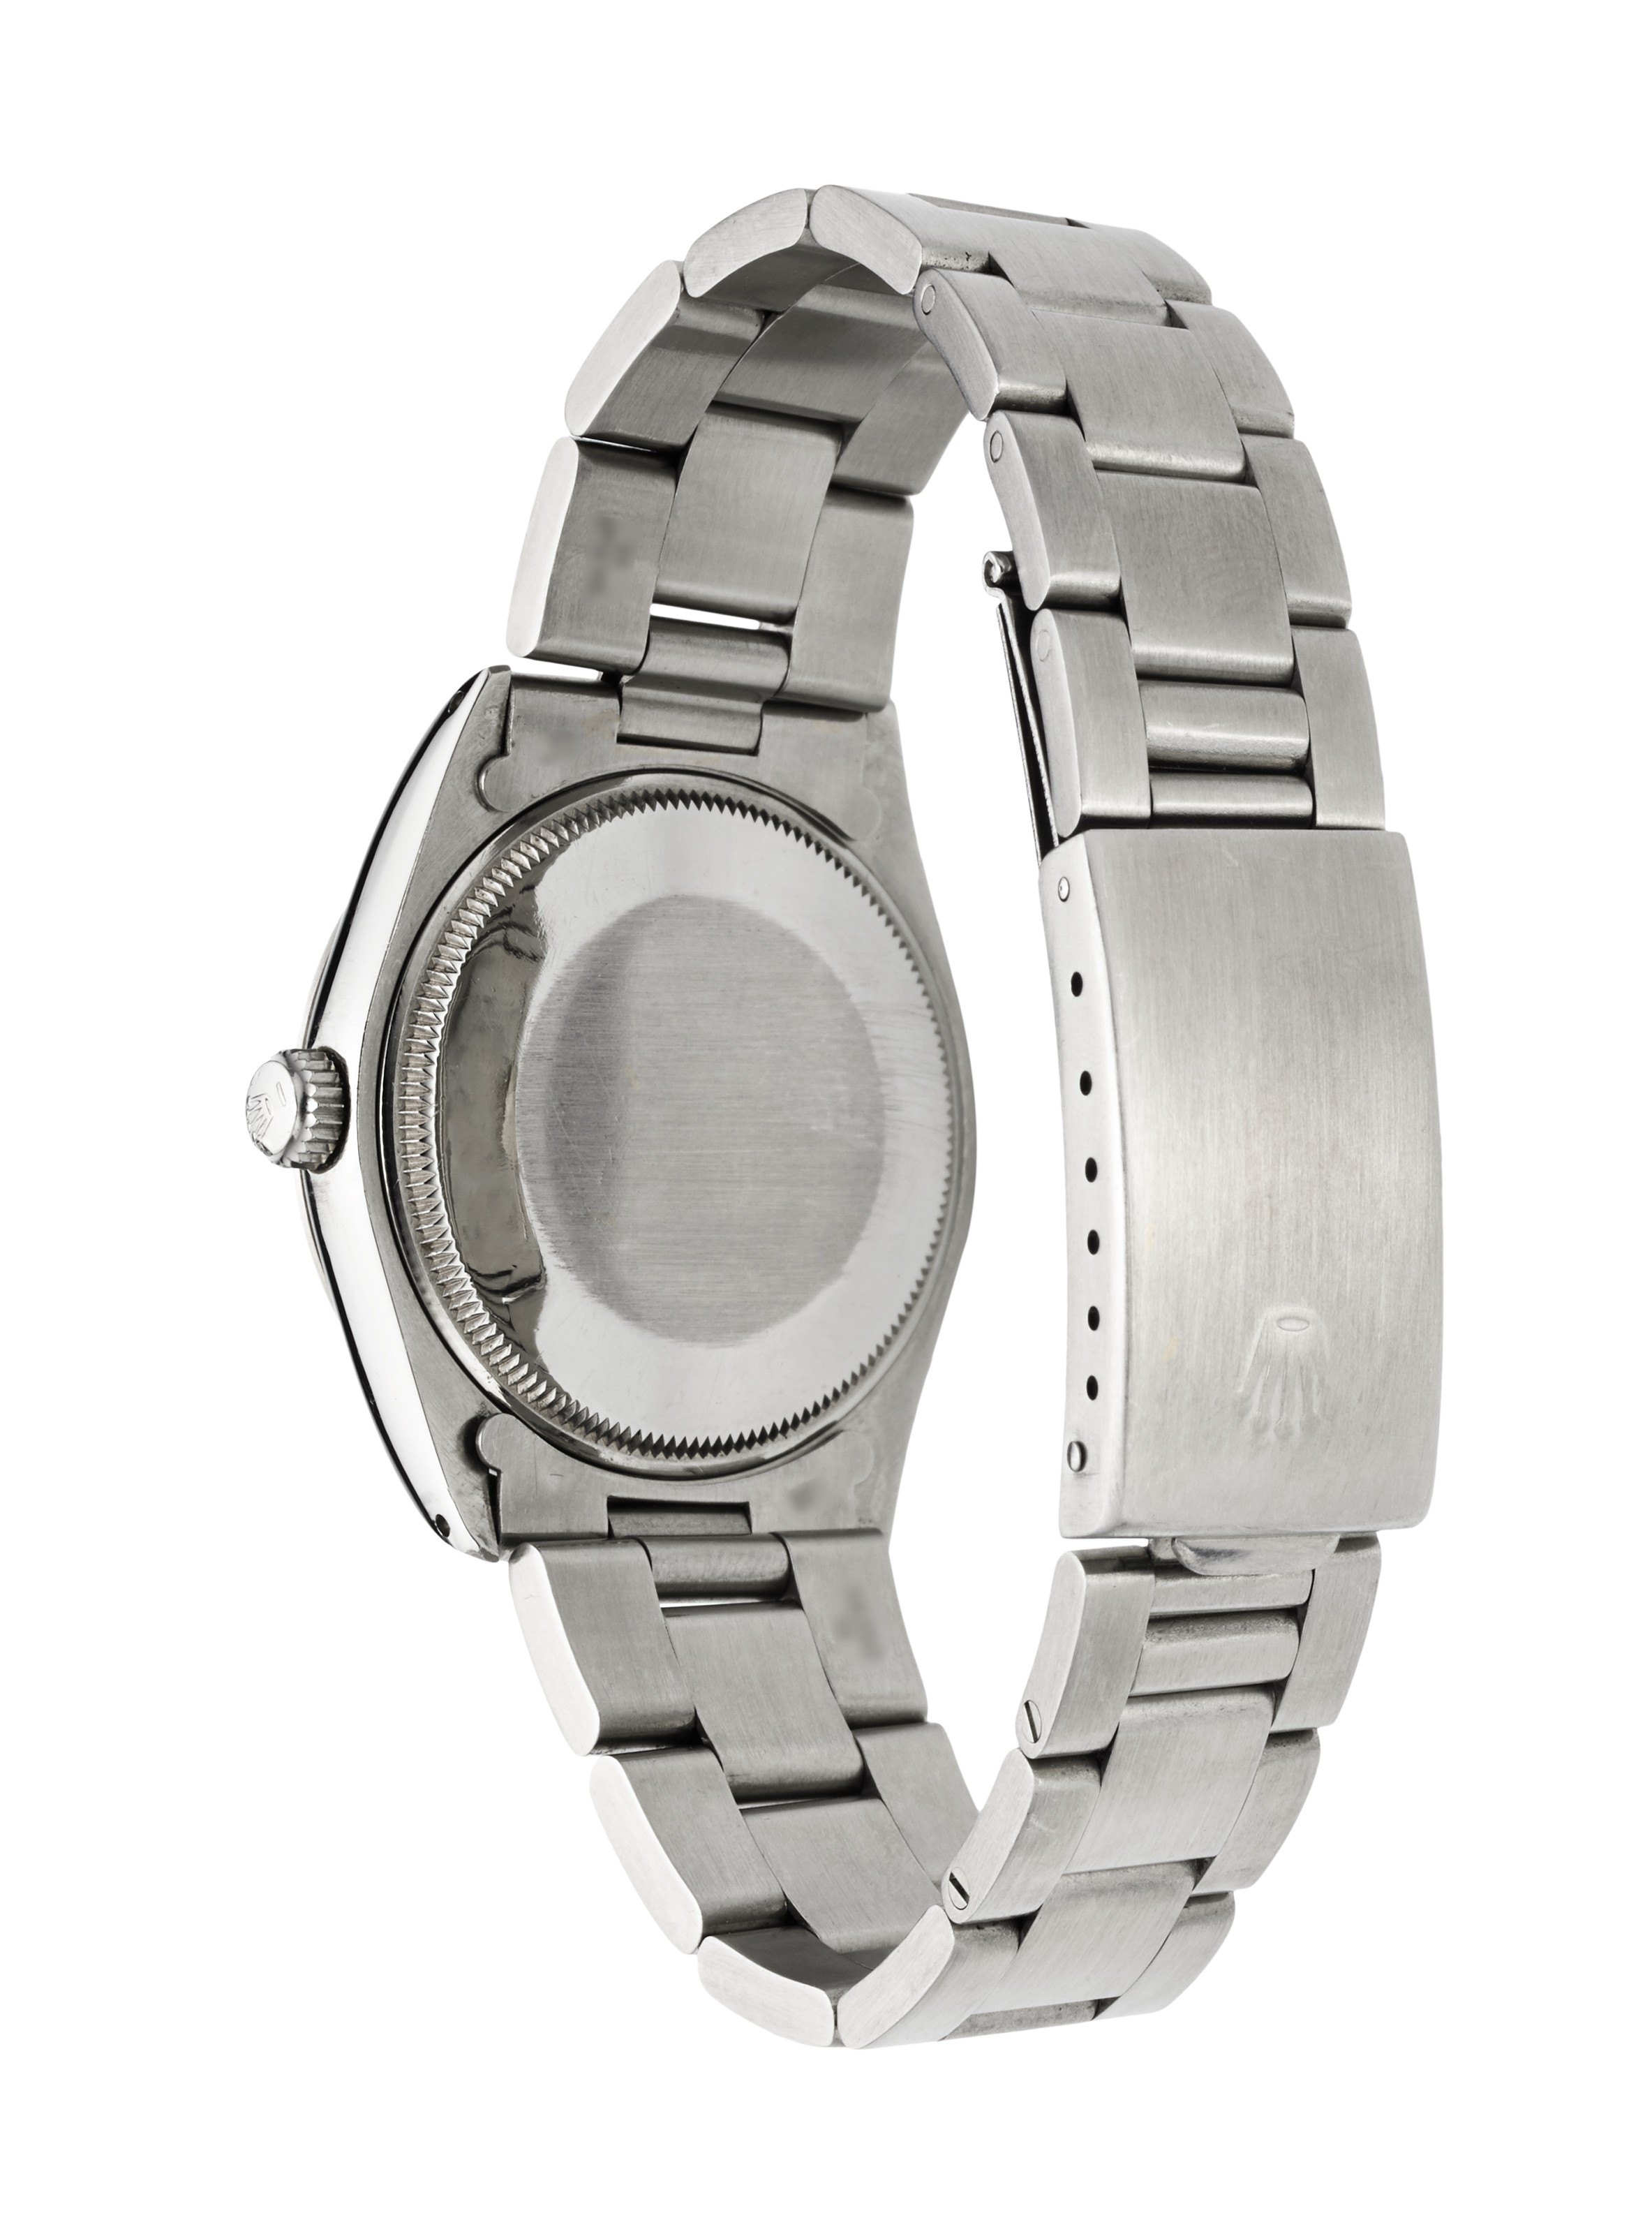 """ROLEX, AIR-KING """"DOMINO'S PIZZA"""", REF. 5500"""